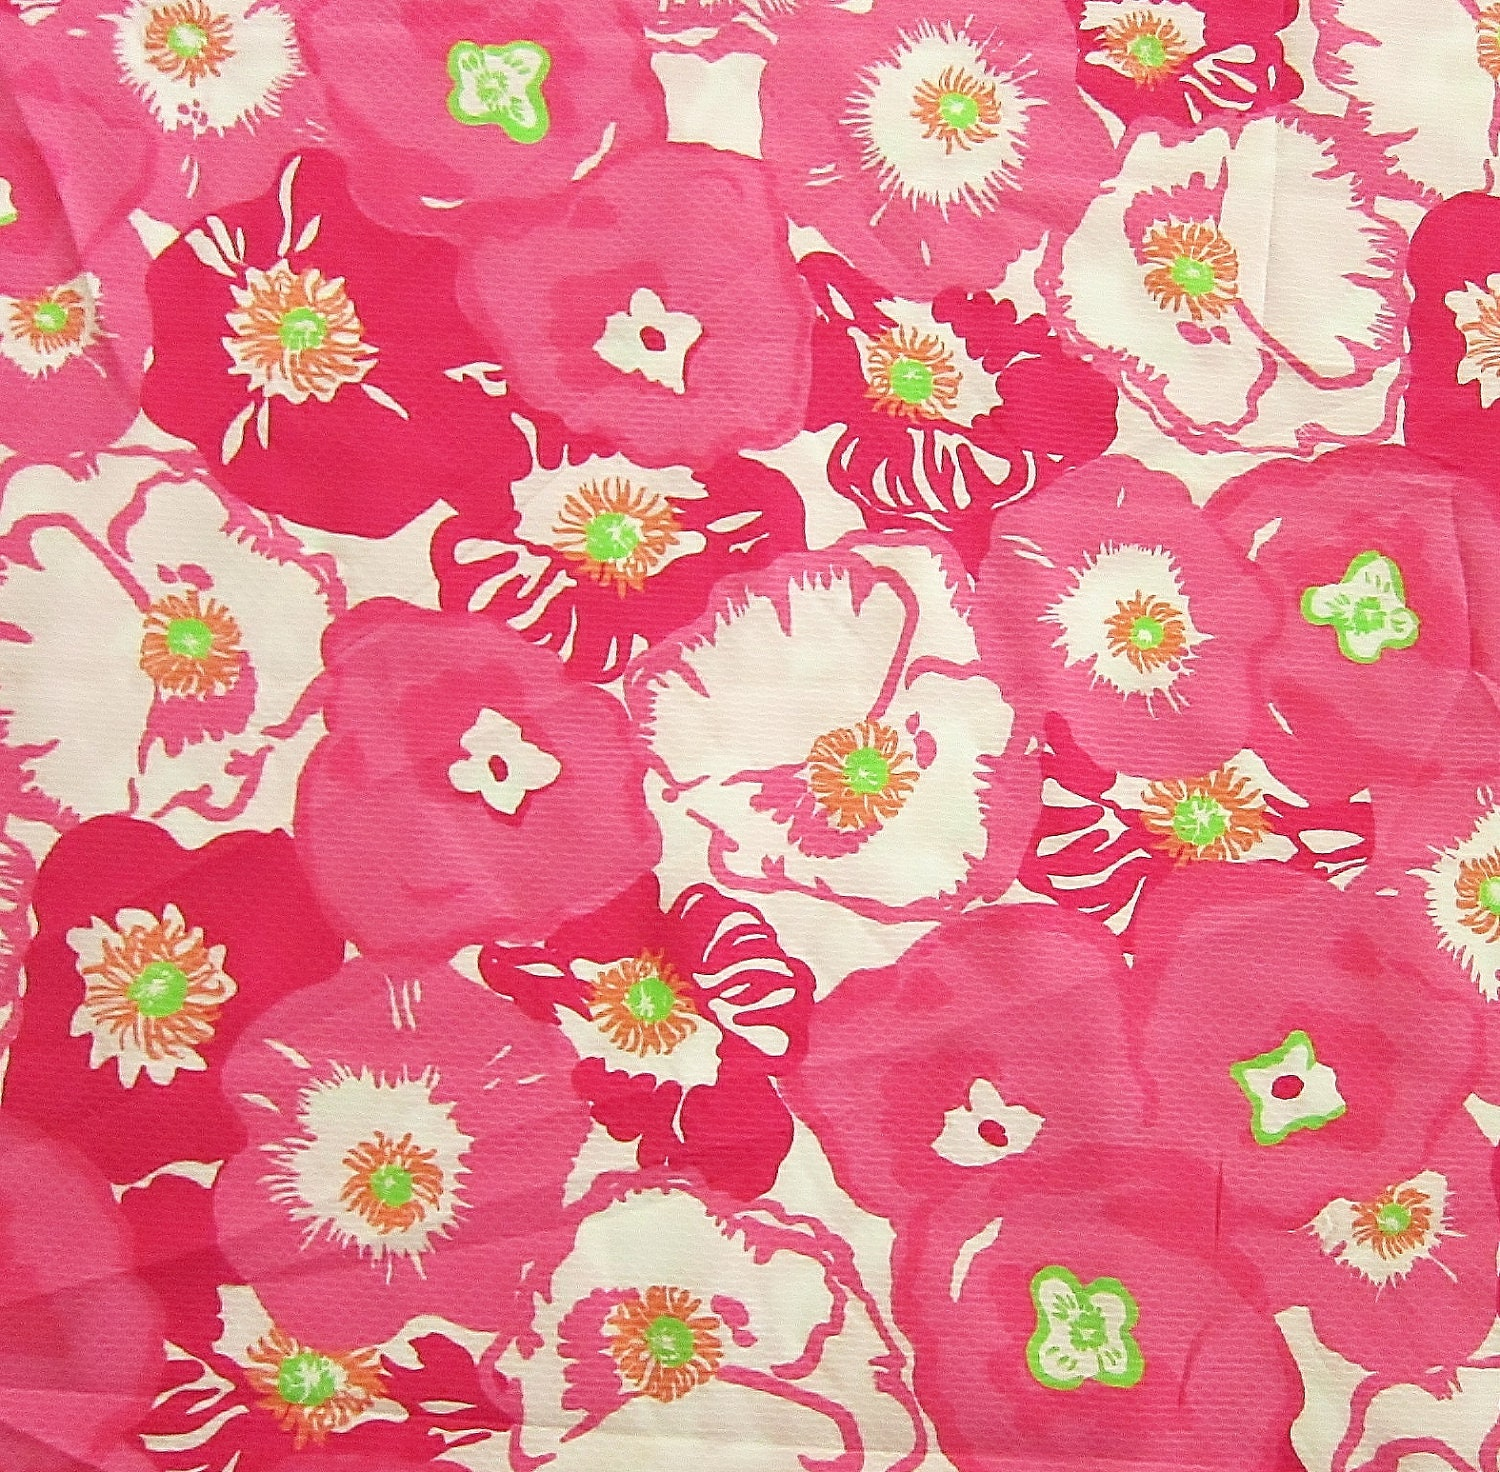 Authentic New Lilly Pulitzer Fabric Hotty Pink Cherry